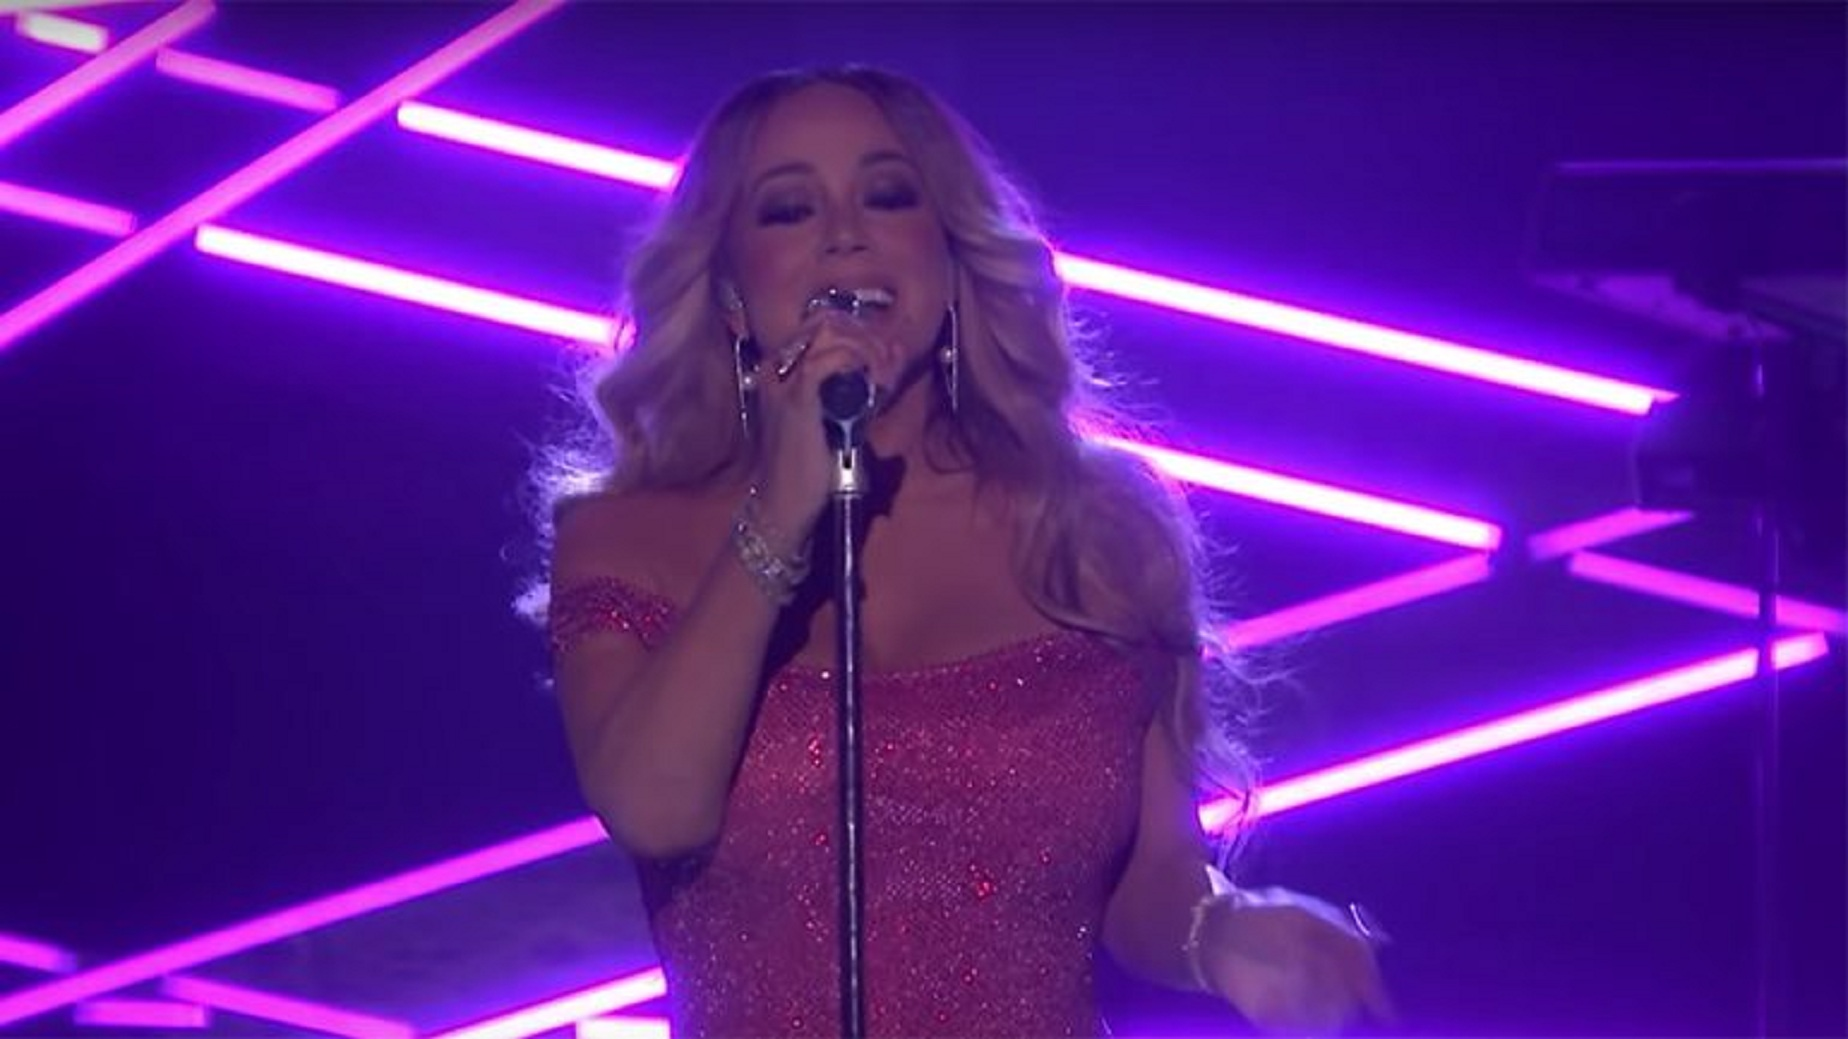 Watch: Mariah Carey Performs 'The Distance' on 'The Tonight Show'